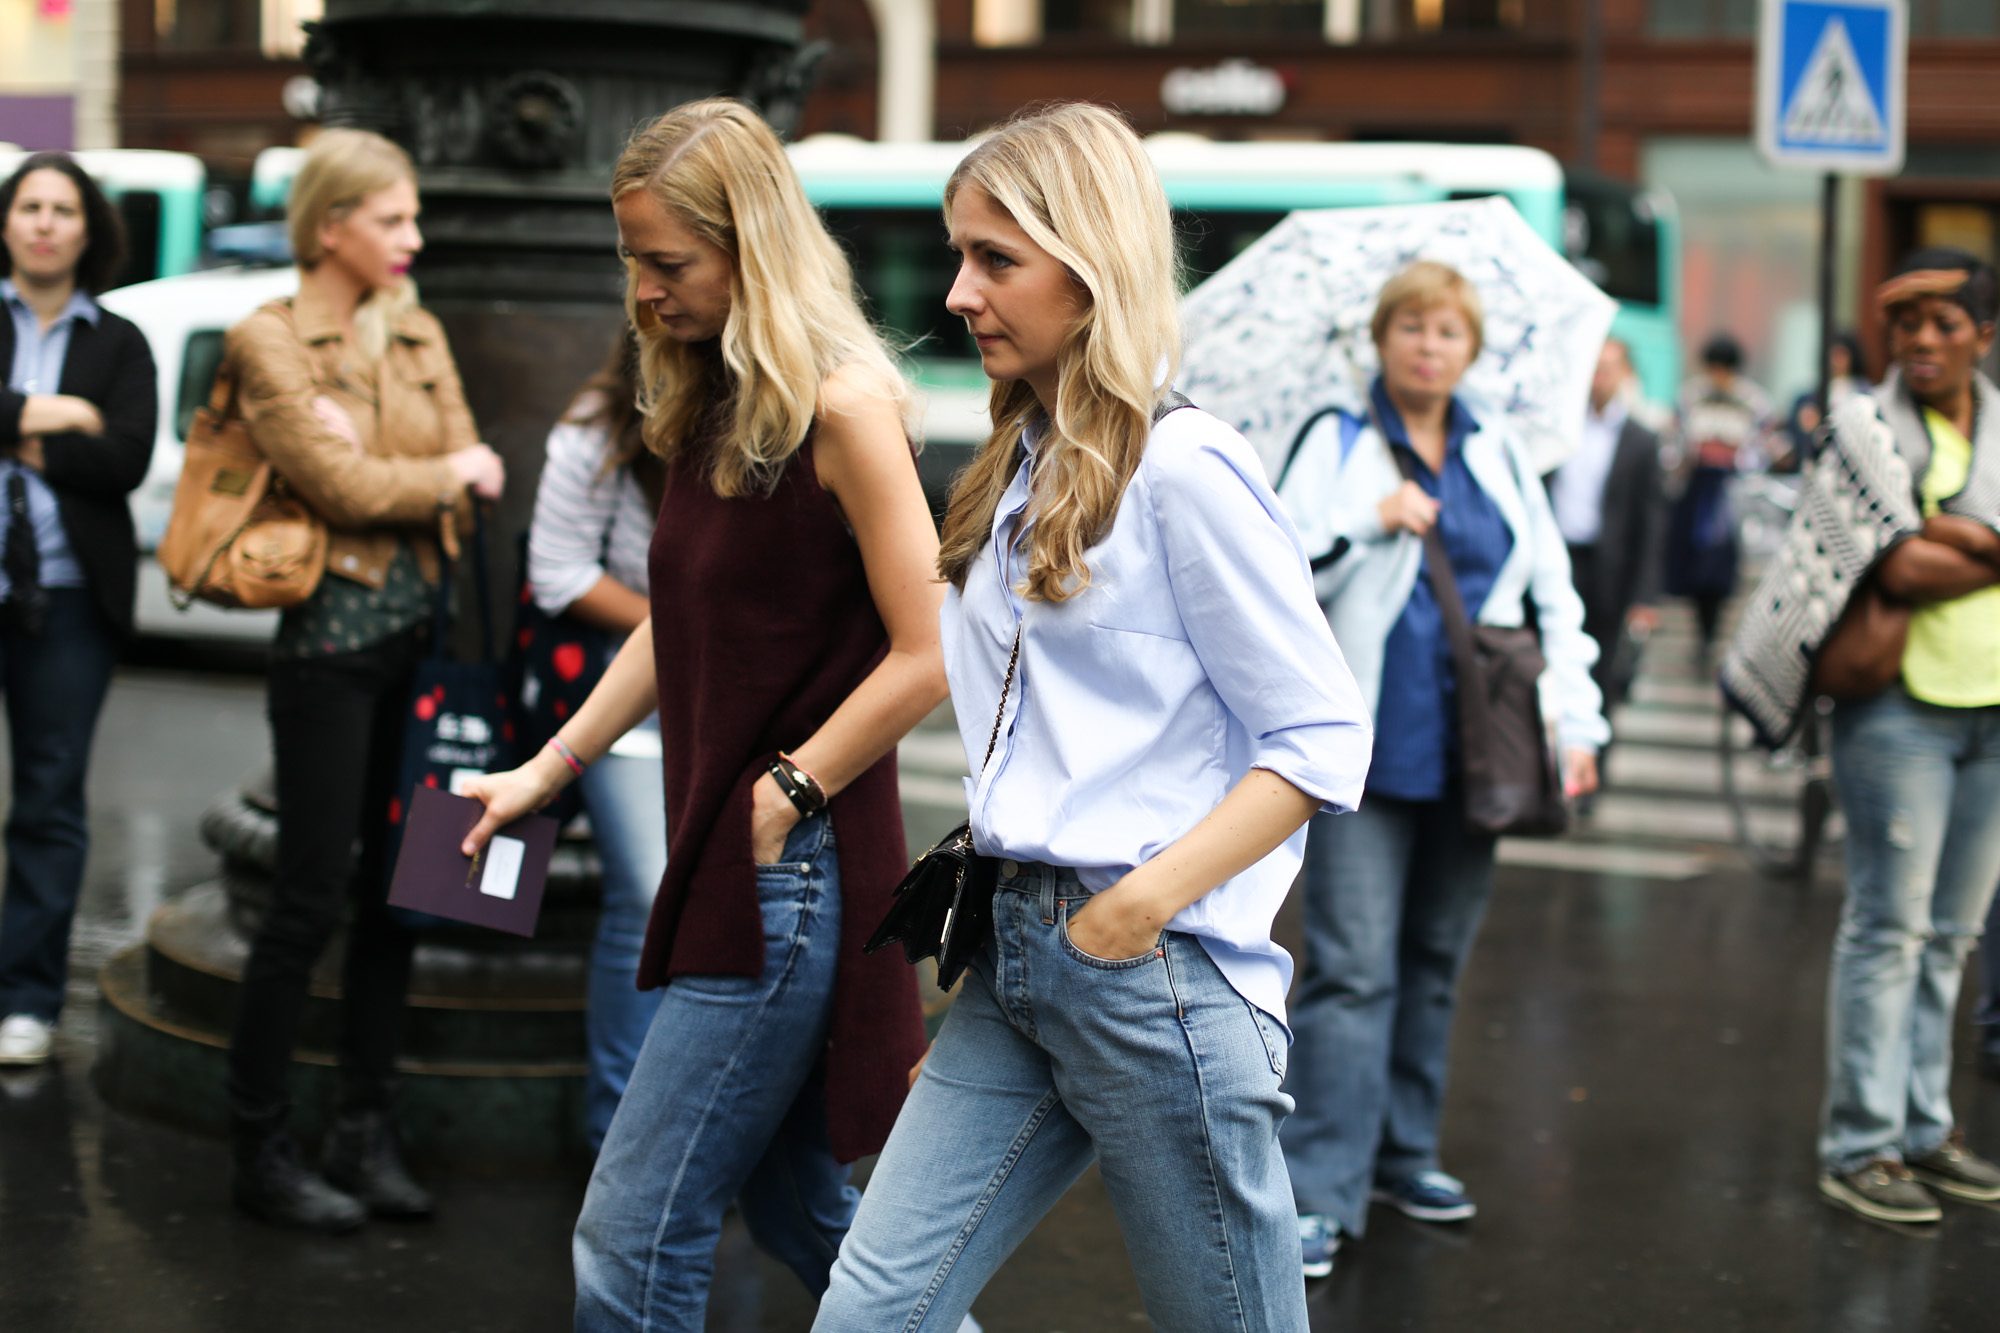 Clochet-streetstyle-paris-fashion-week-acne-studios-jeans-pop-levis-501-vintage